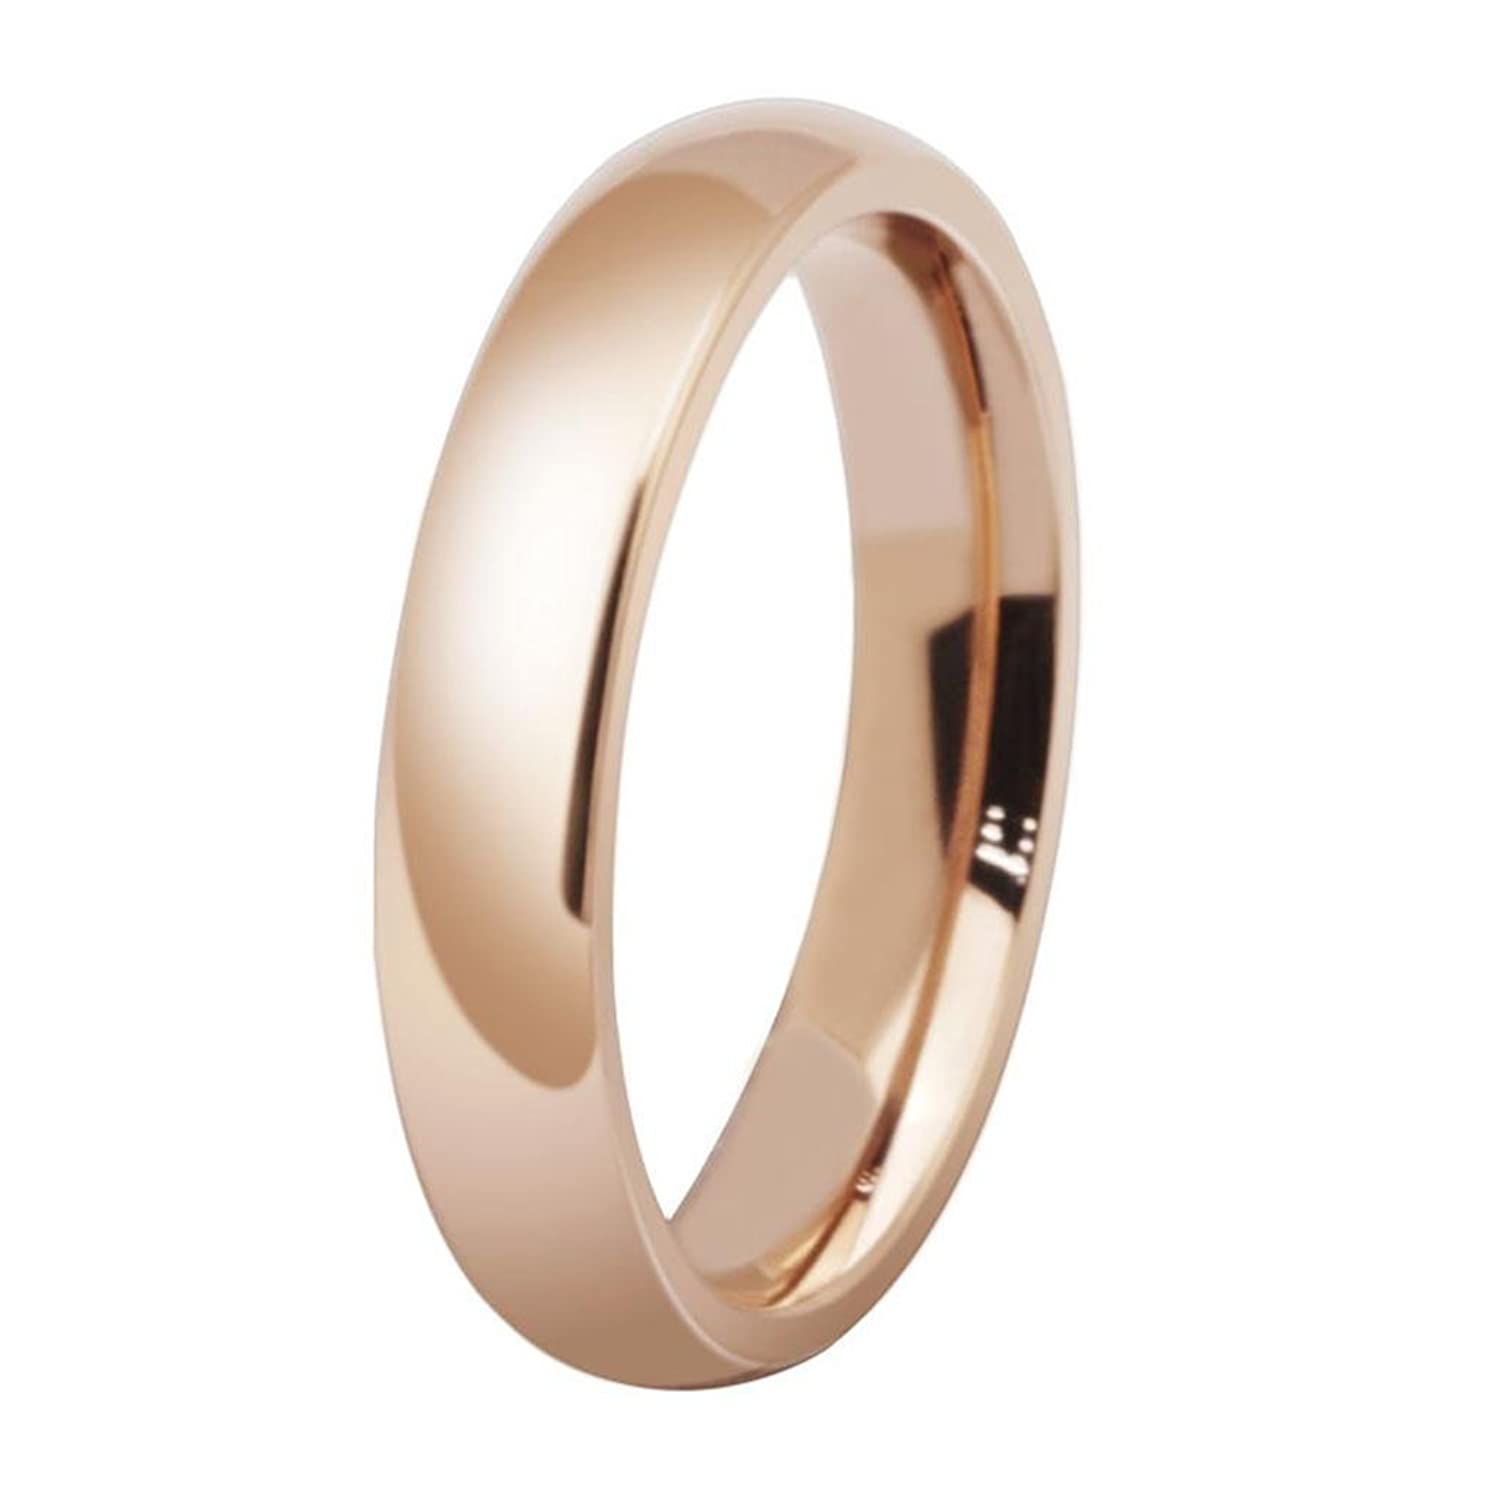 AMDXD Jewelry Titanium Stainless Steel Jewellery Plated Rose Gold